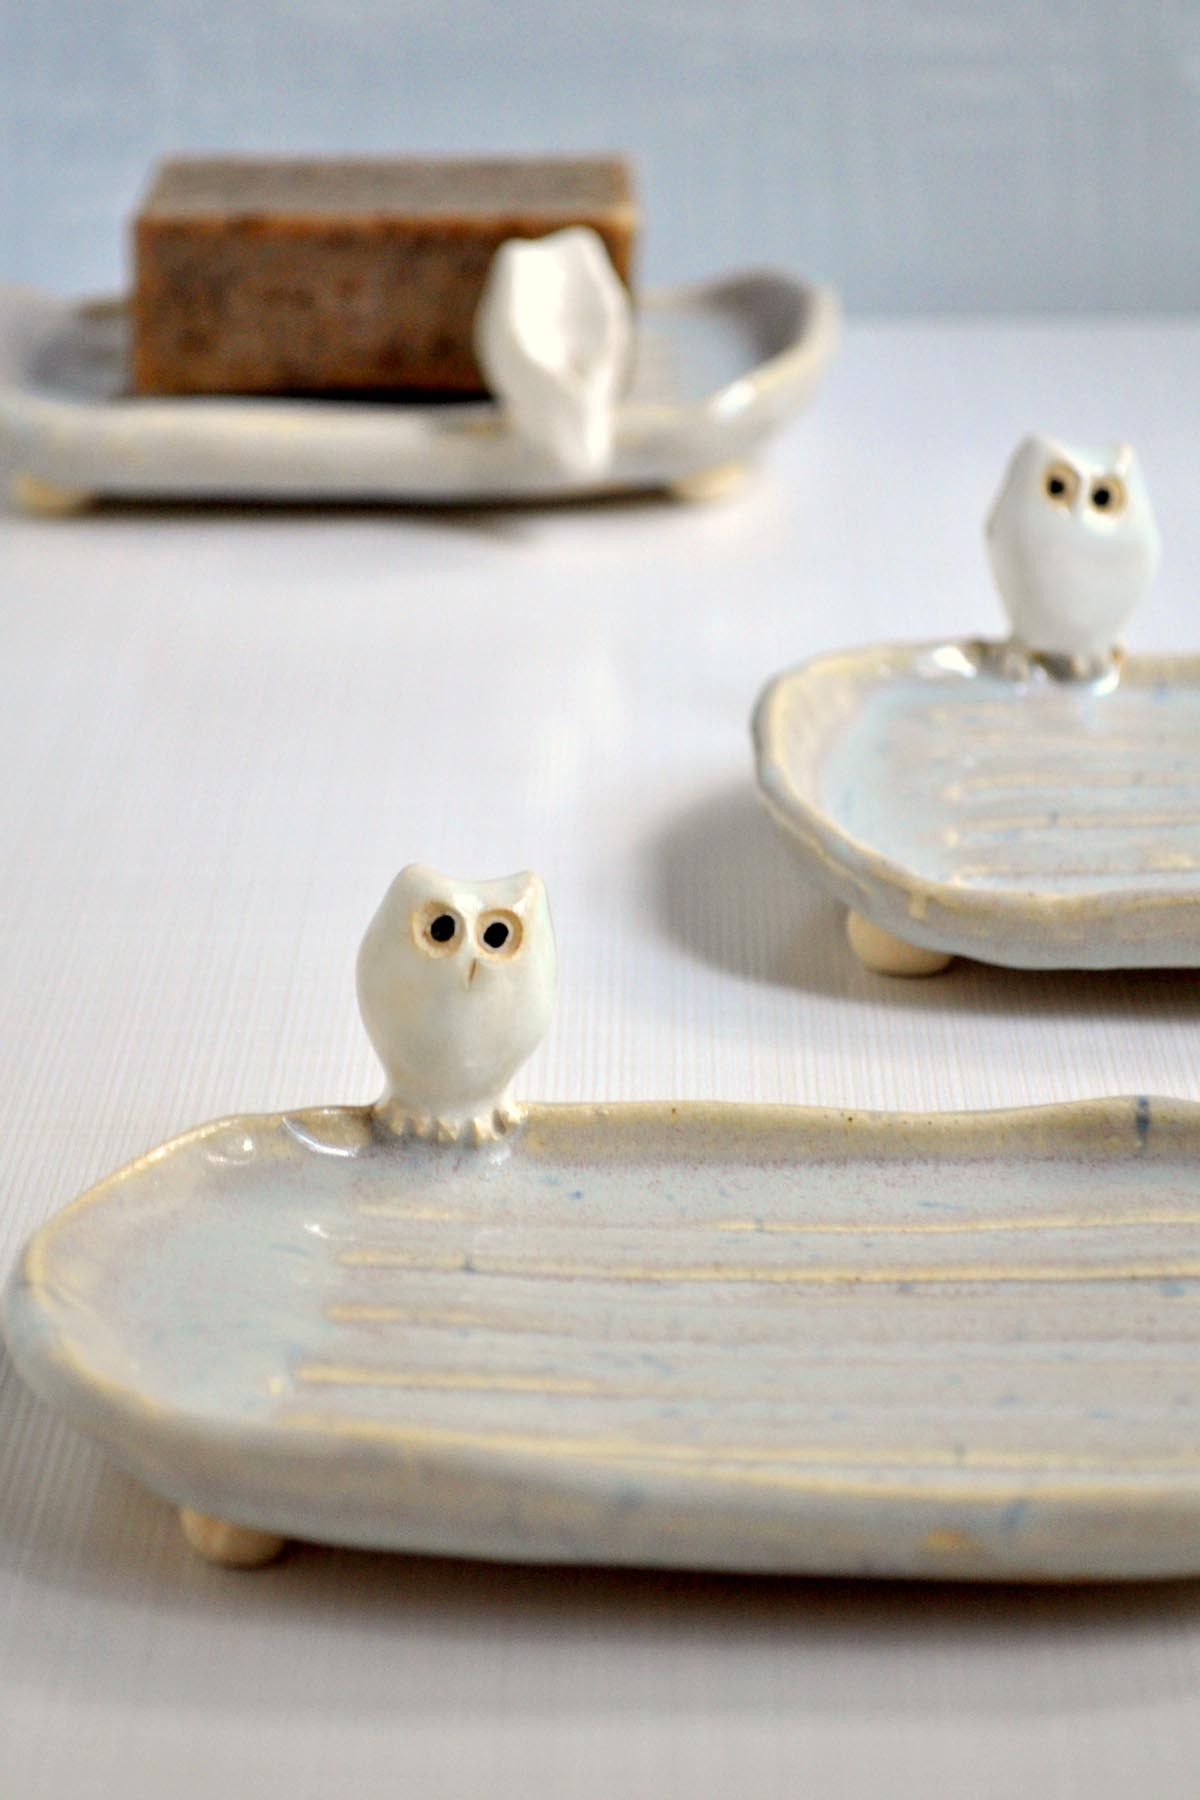 Ceramic Handmade Owl Soap Dish from Lee Wolfe Pottery